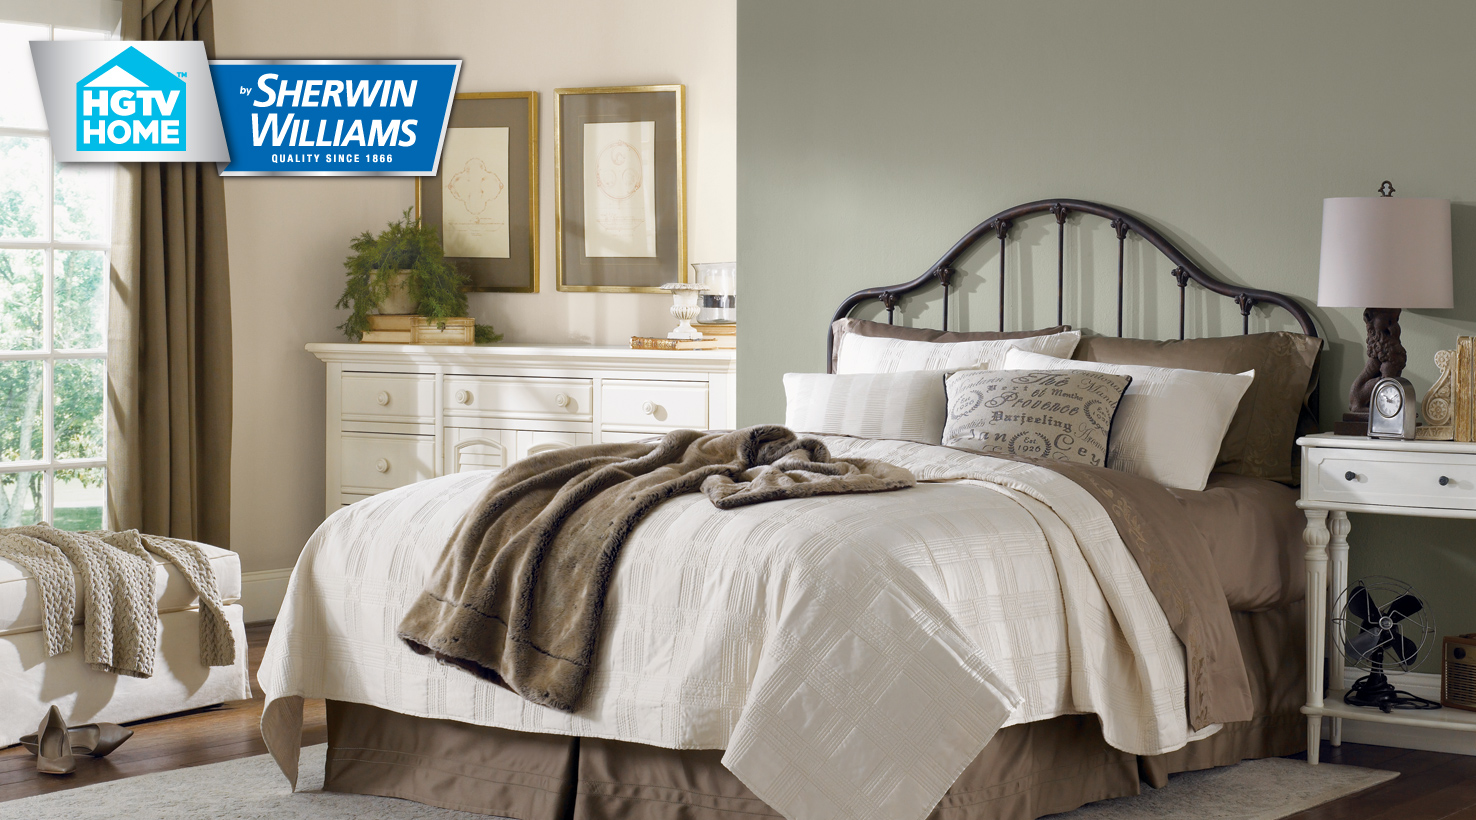 Neutral Nuance Paint Color Collection | HGTV HOME™ by Sherwin-Williams